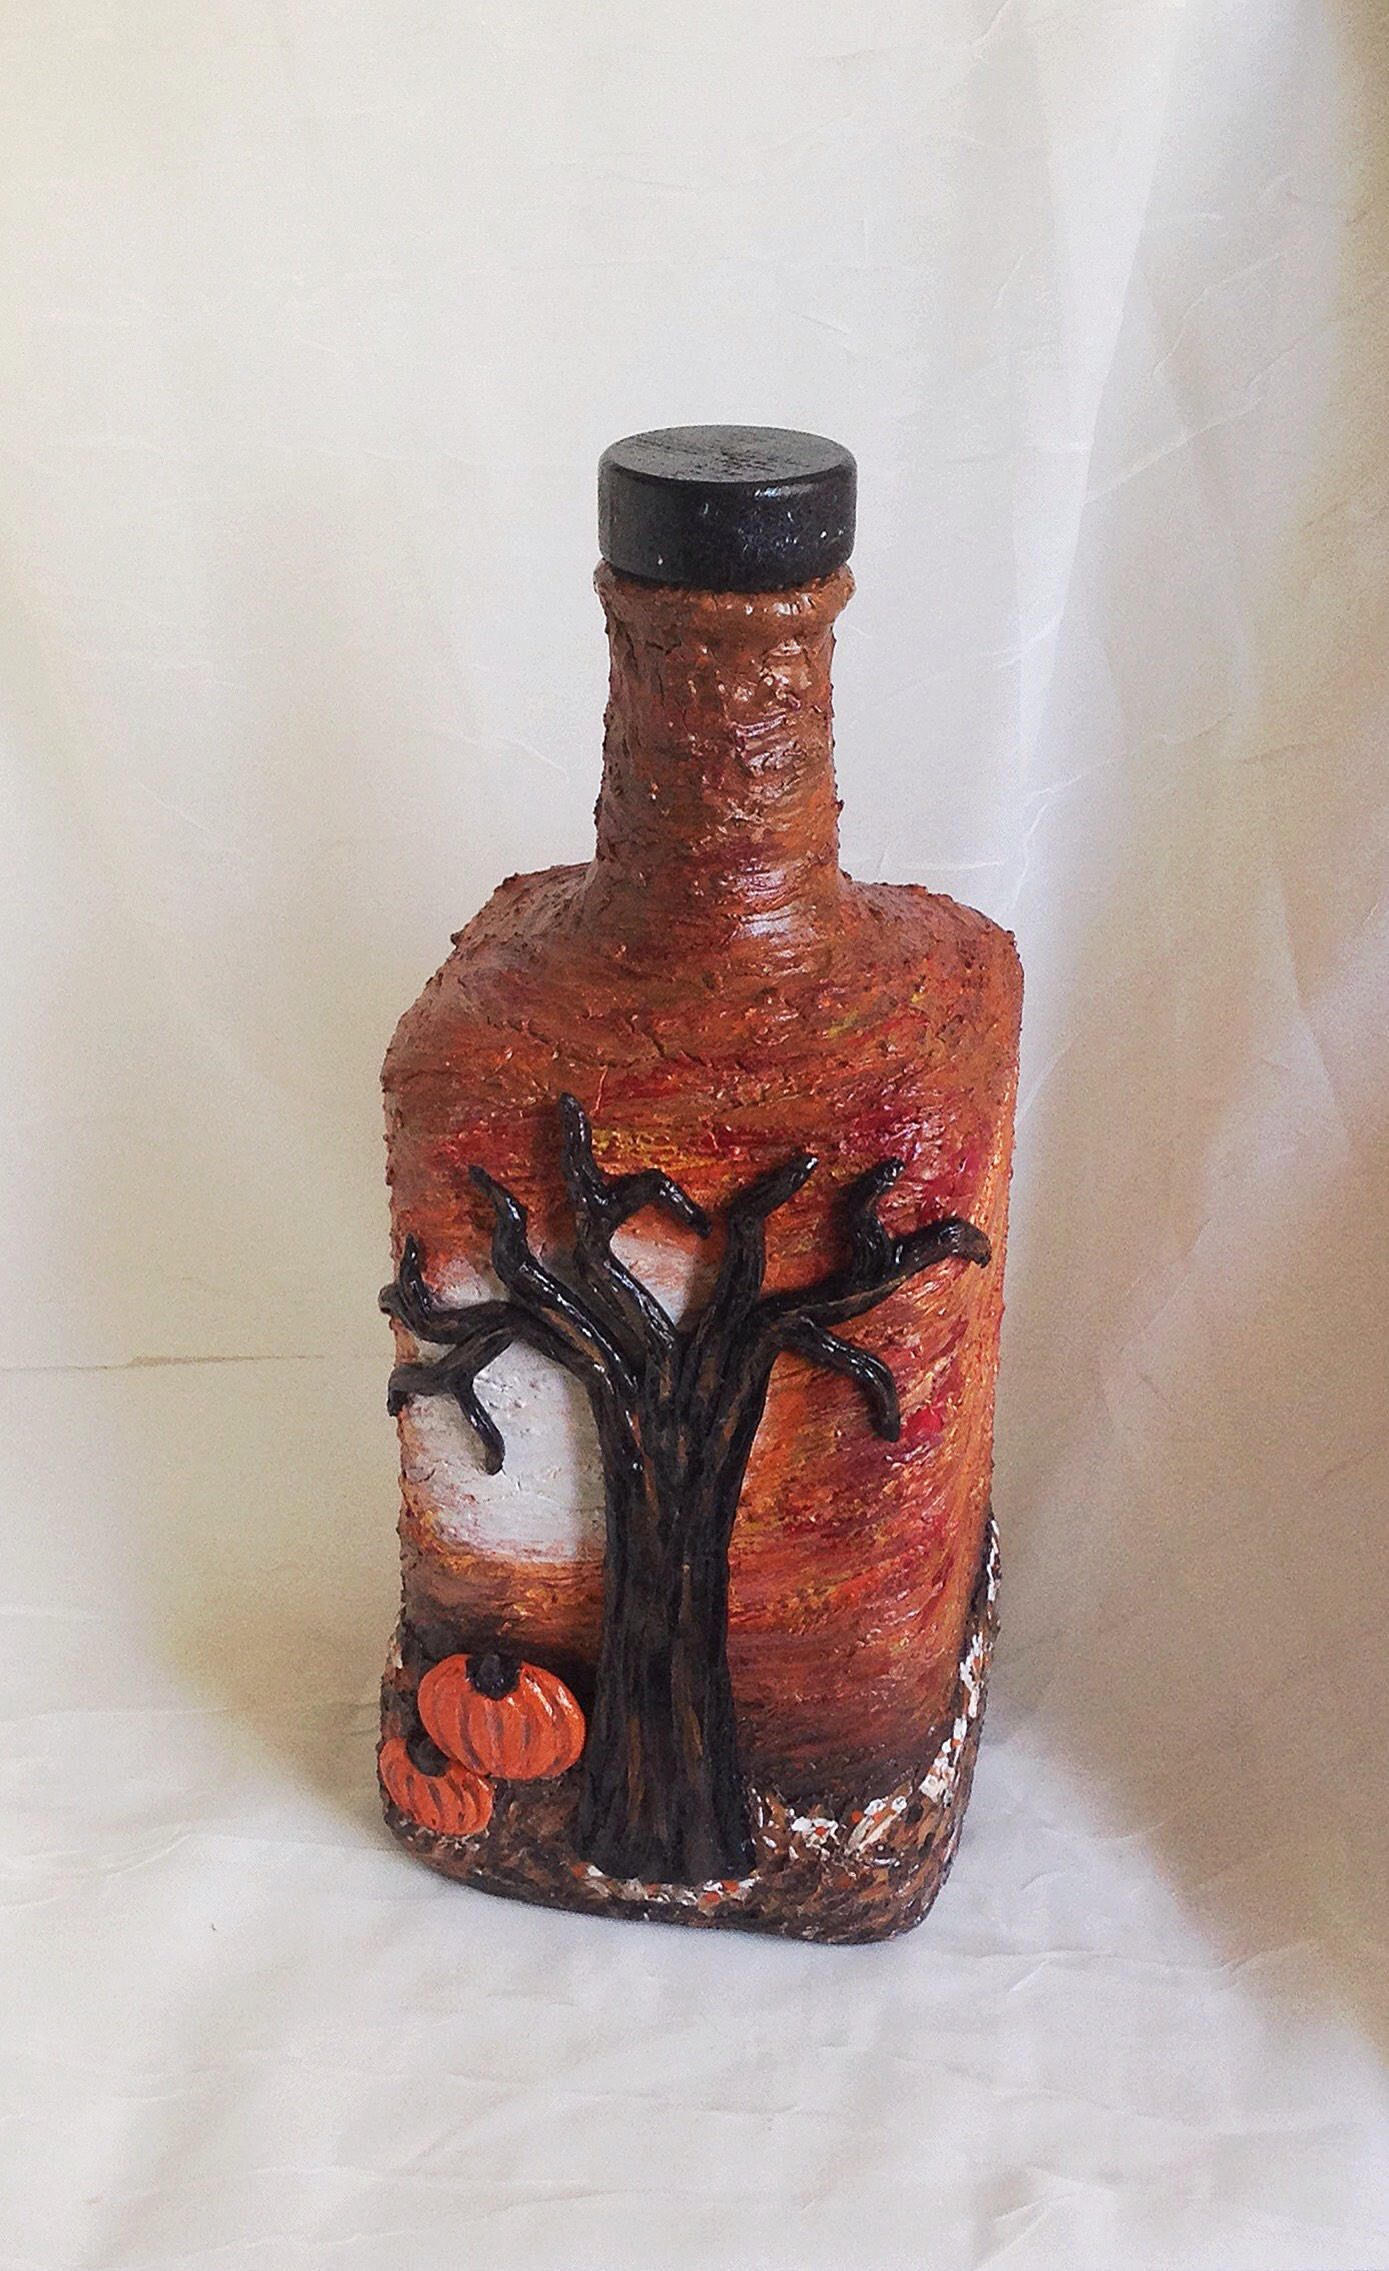 Recycled Fall Halloween Altered Bottle Autumn Artfall Etsy In 2020 Altered Bottles Bottle Bottle Art